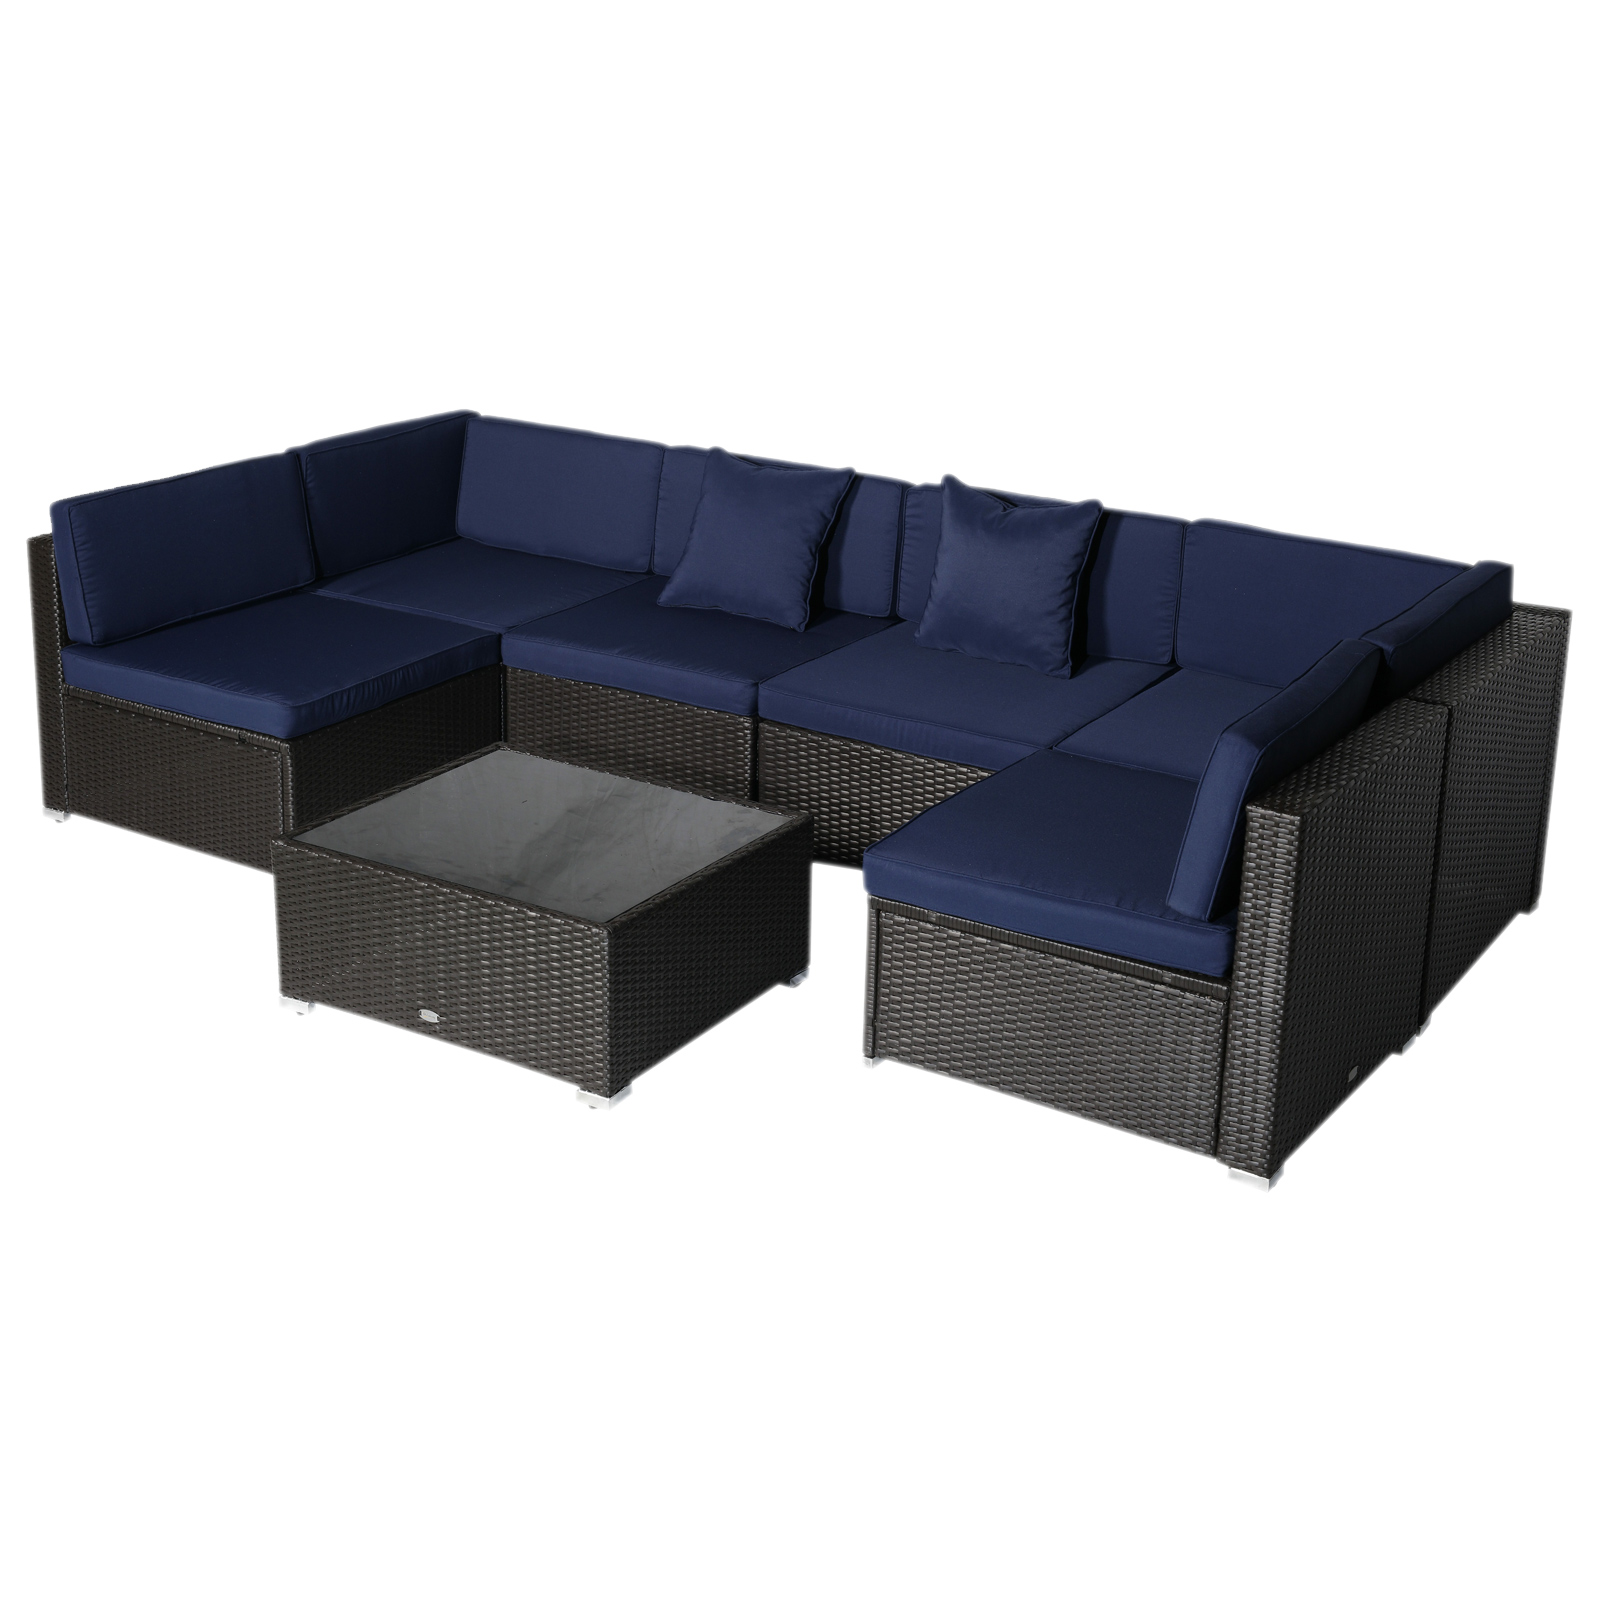 outsunny 7 piece outdoor wicker patio sofa set modern rattan conversation furniture set with cushions pillows and tea table walmart com